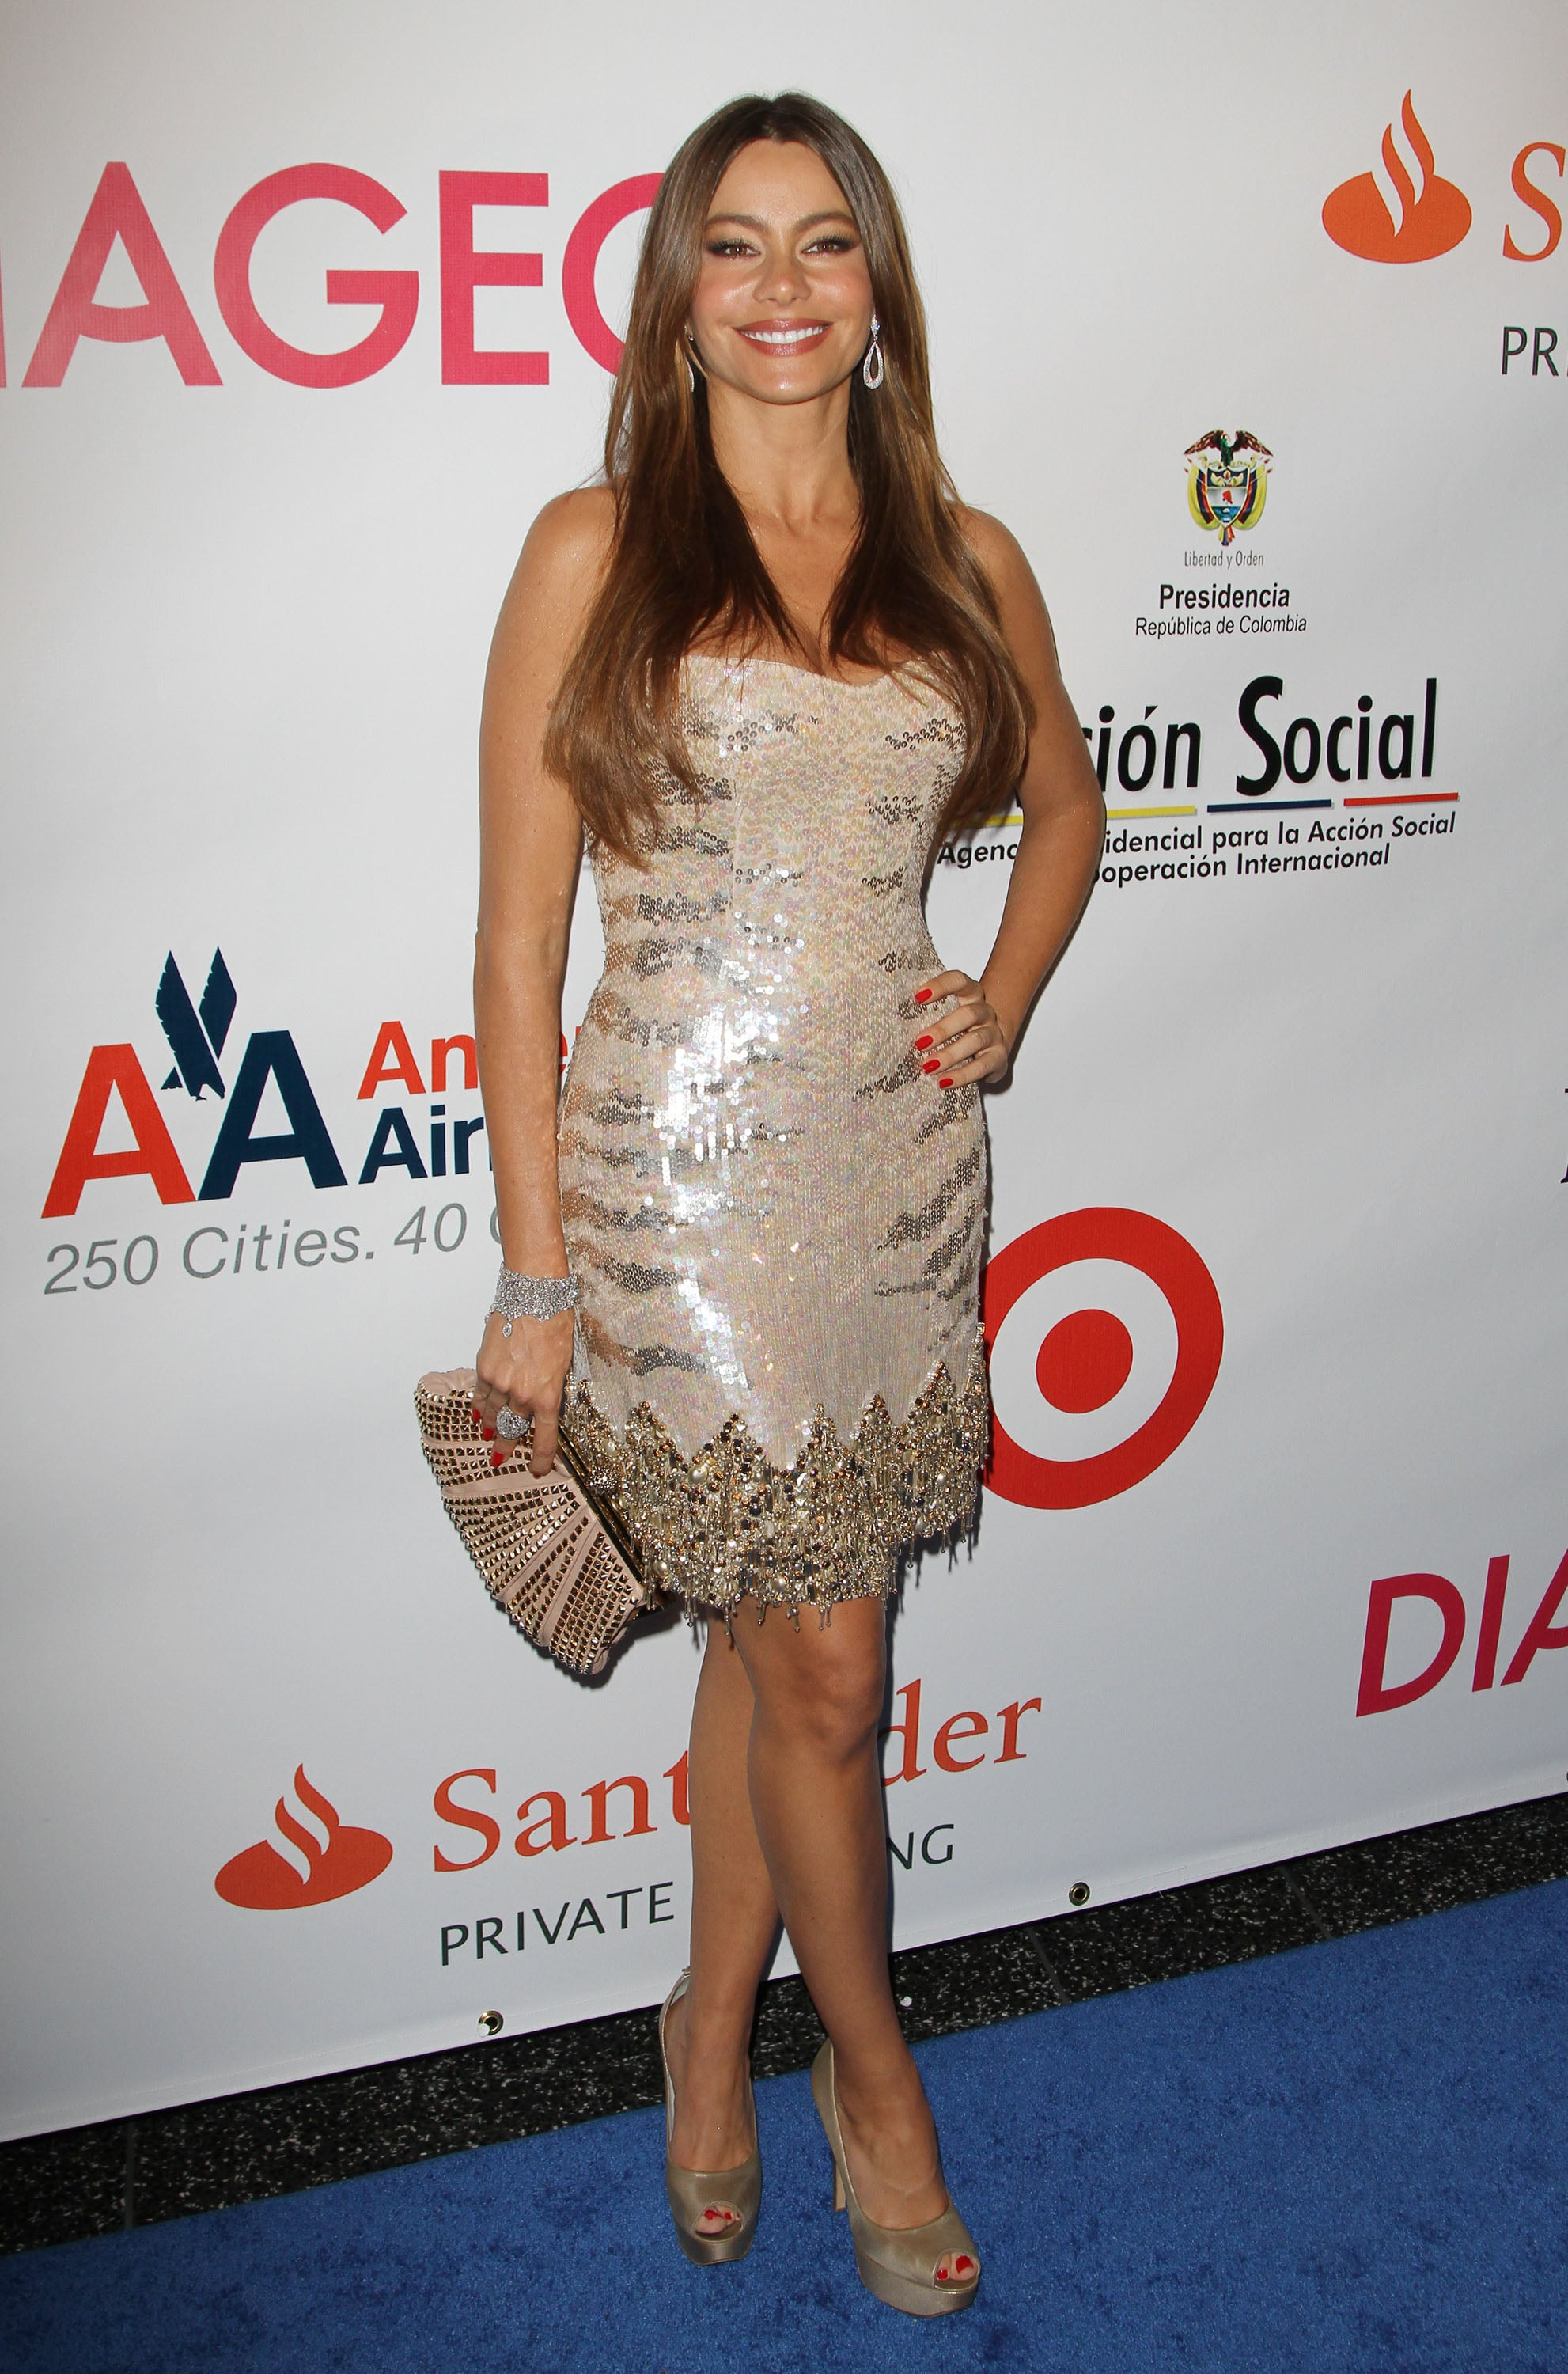 Sofia Vergara sparkled in a glistening beaded and fringed Roberto Cavalli minidress, champagne-colored pumps, and a studded clutch at a 2011 BeLive celebration in Miami.